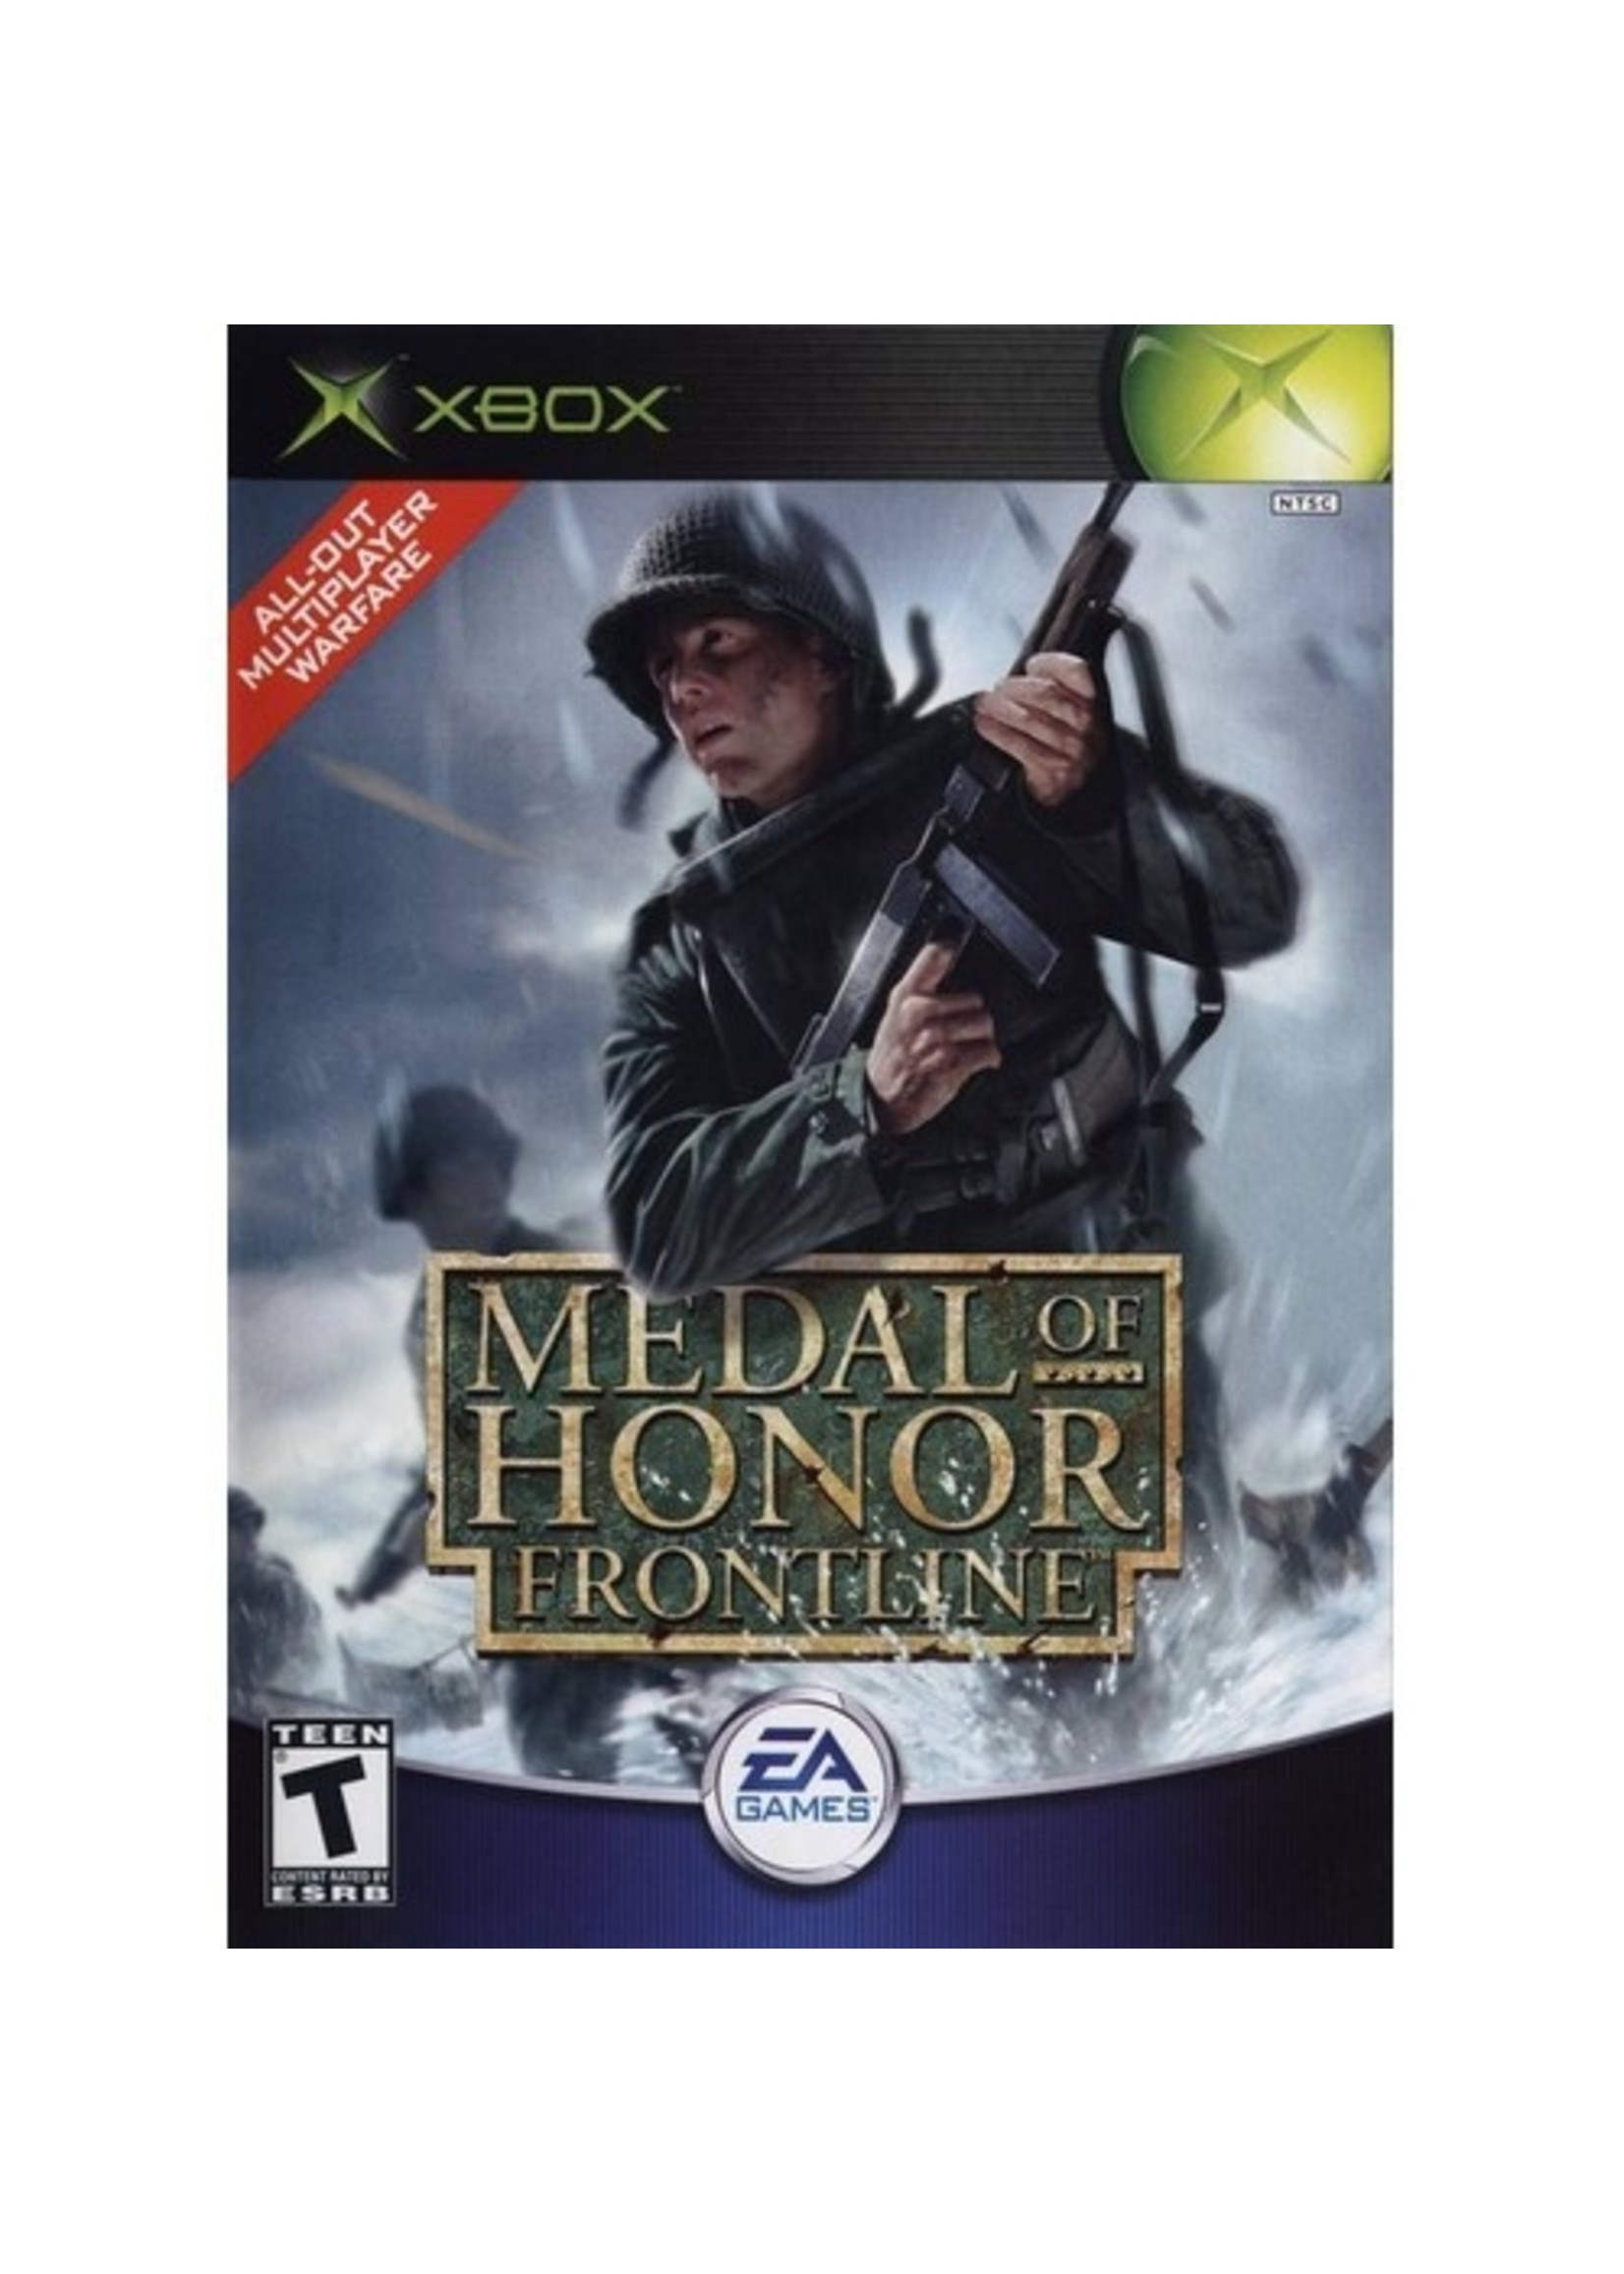 Medal of Honor: Frontline - XBOX PrePlayed